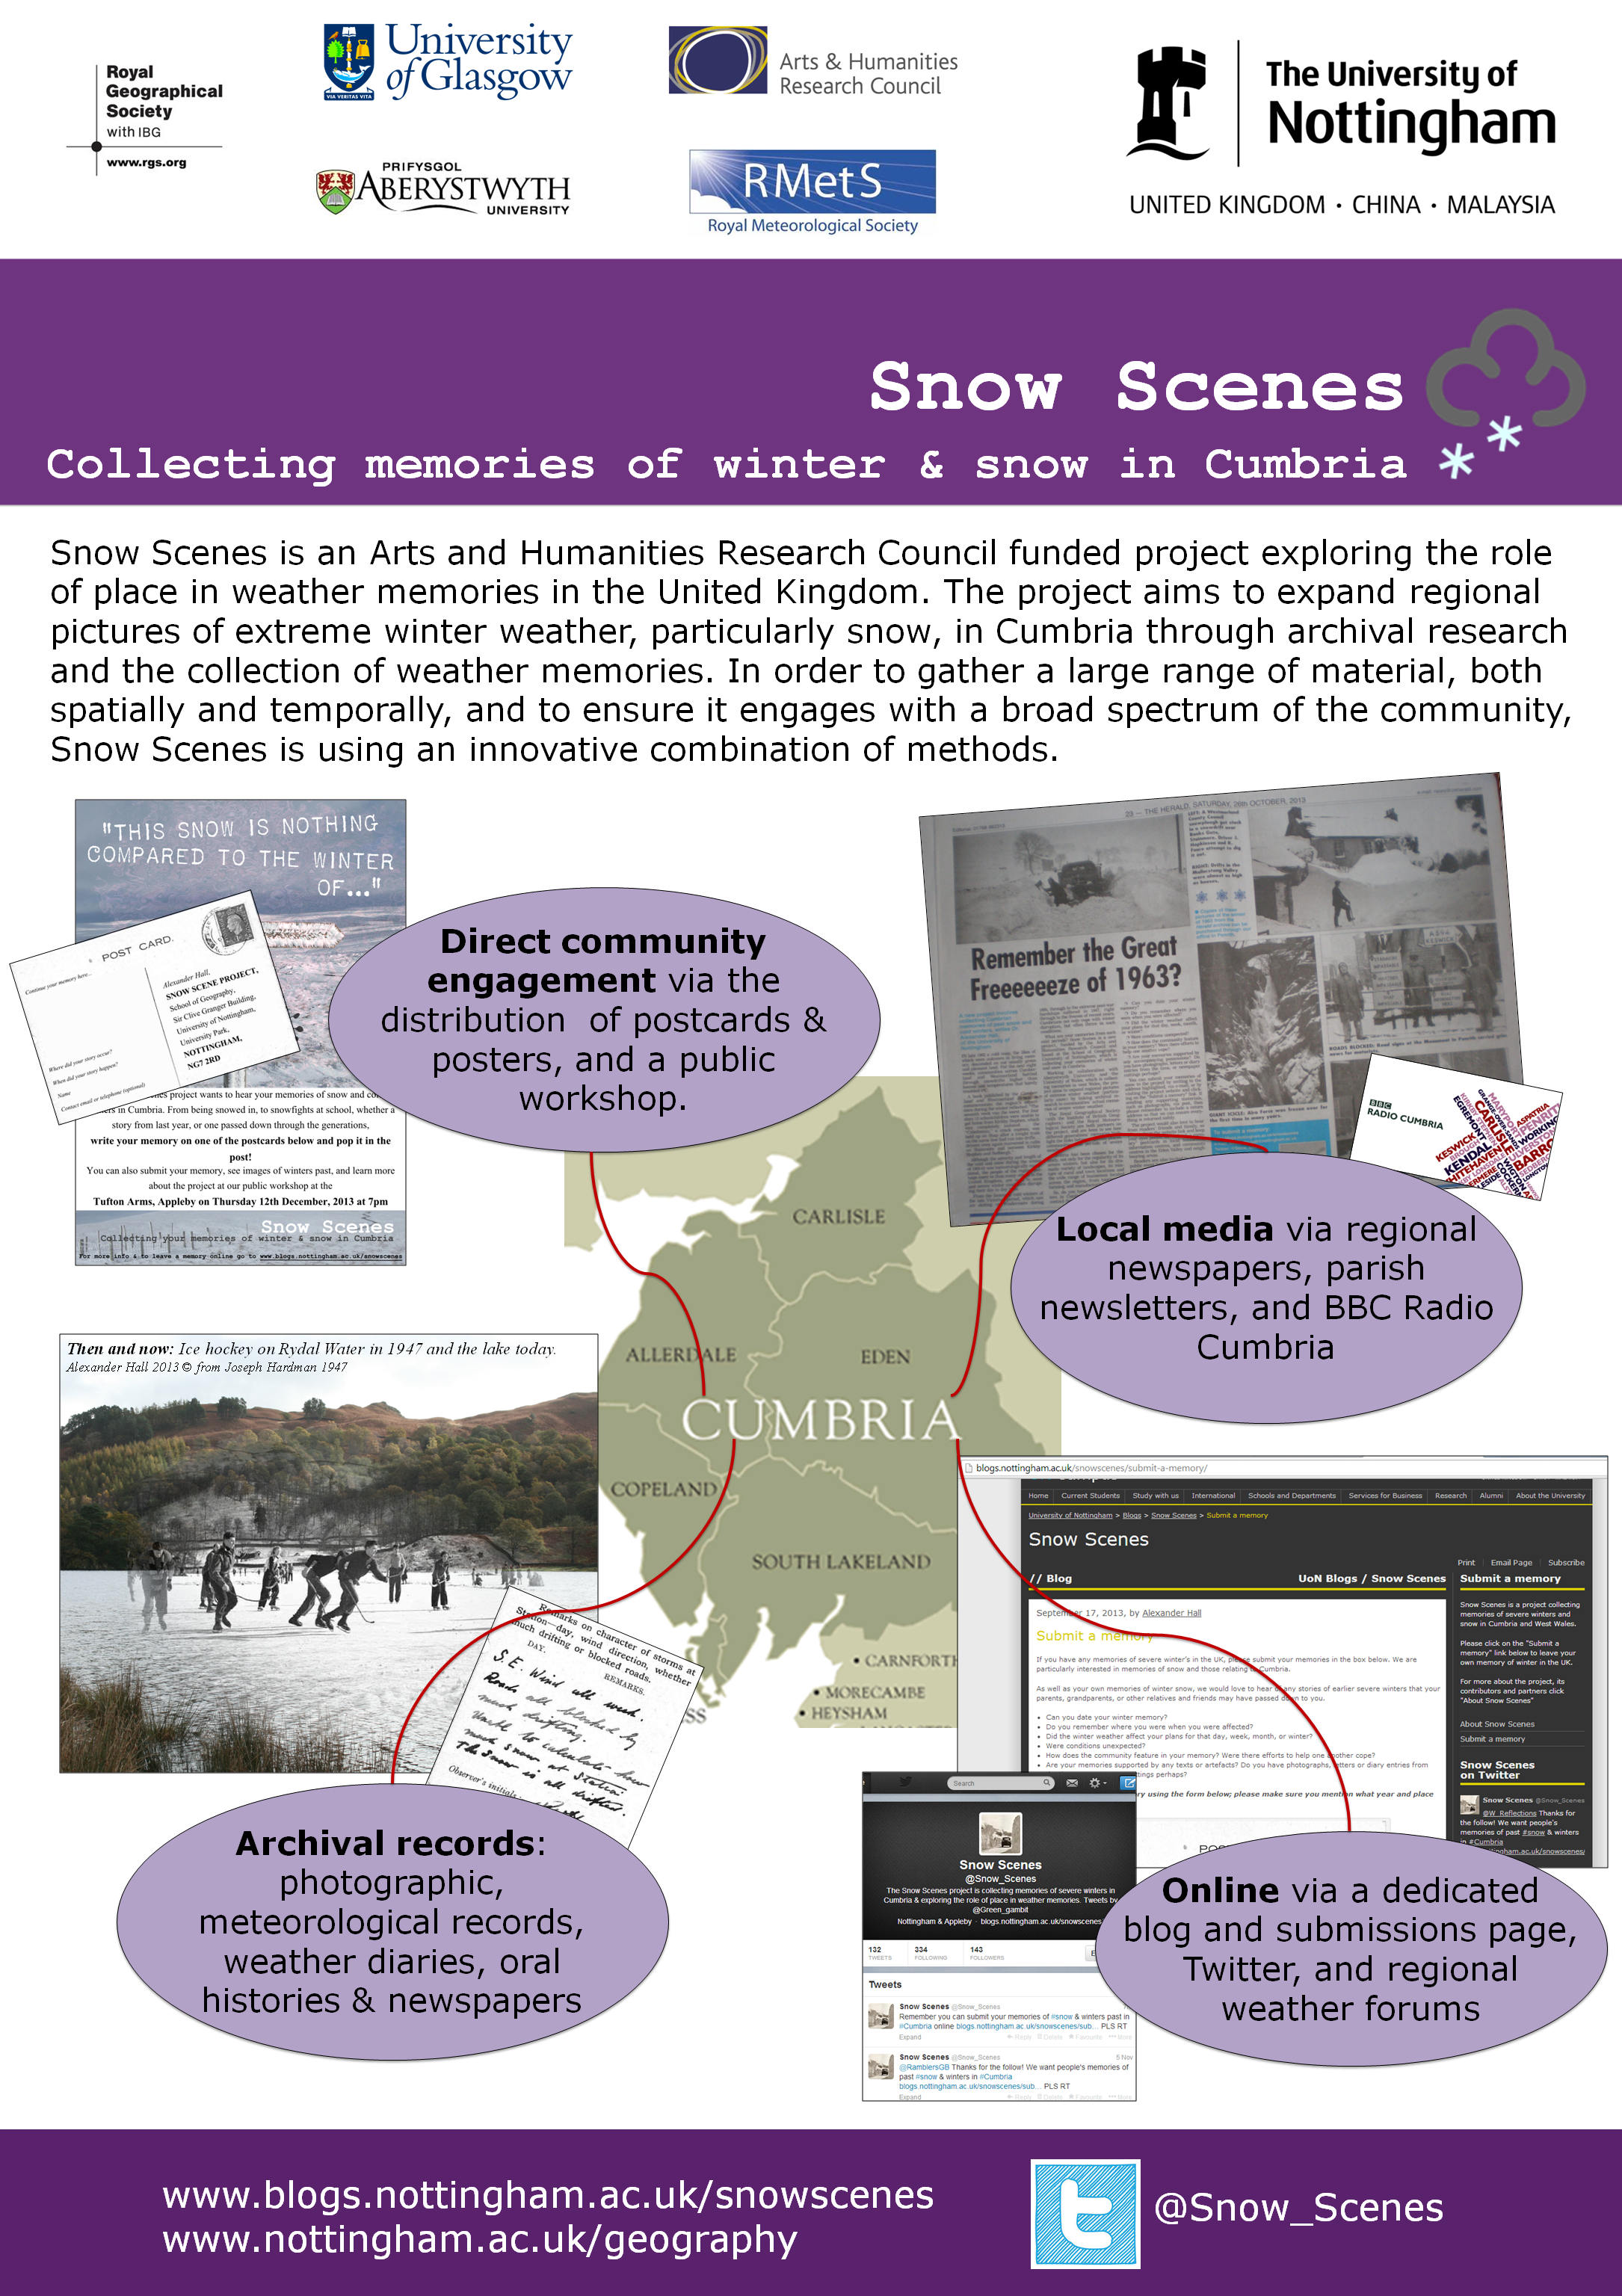 An overview poster of the Snow Scenes project, highlighting the various methods being used to collect information.